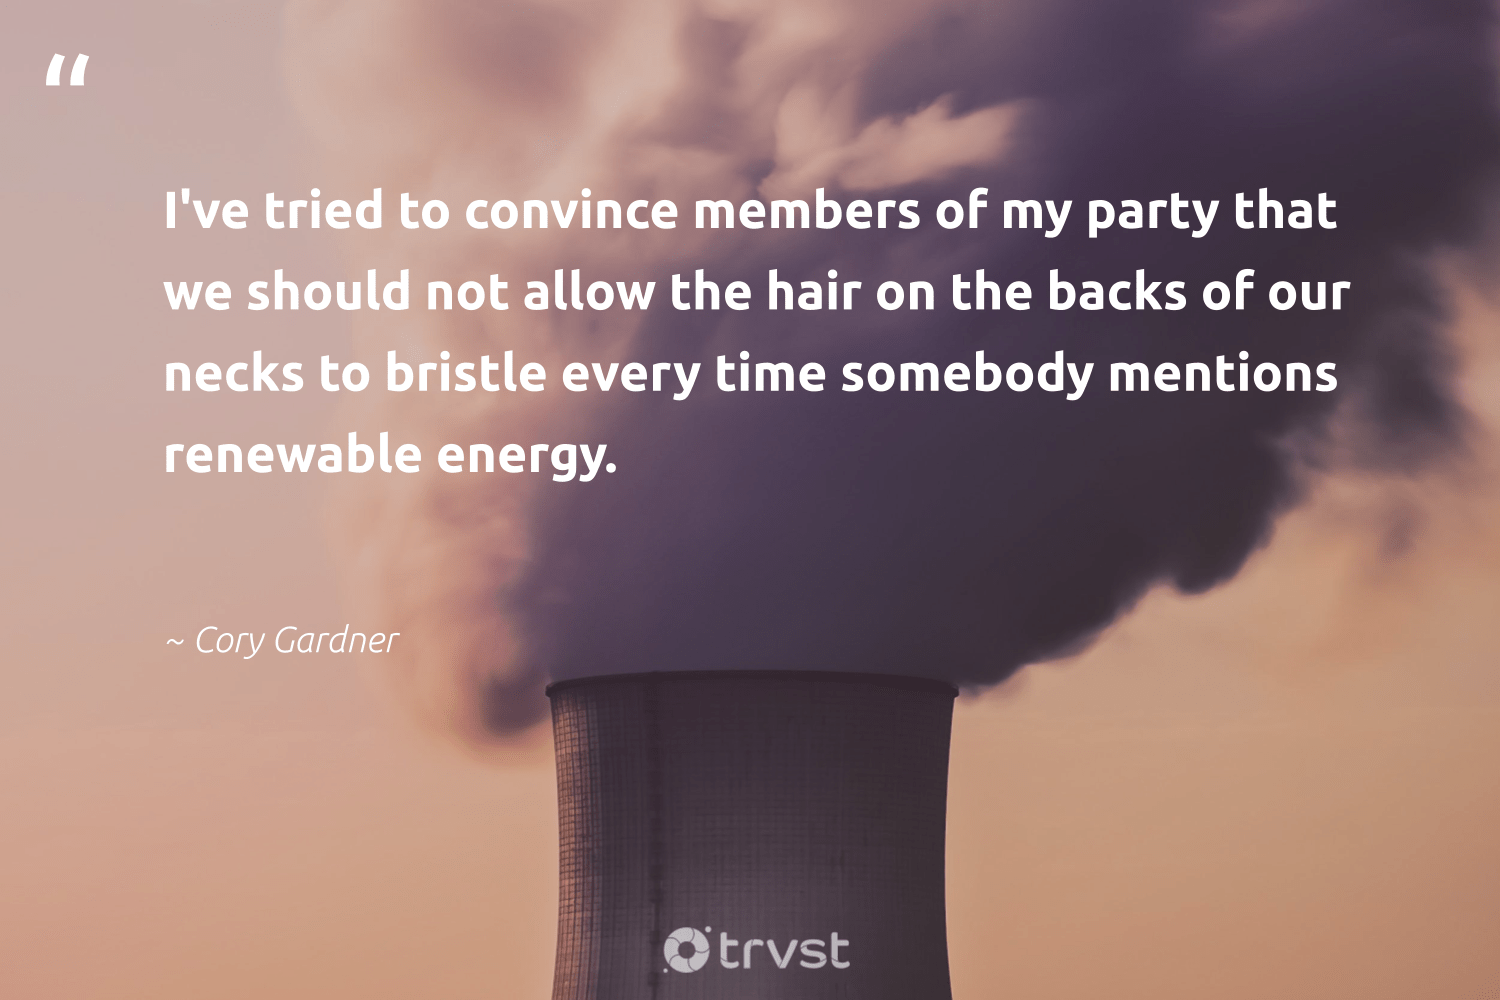 """""""I've tried to convince members of my party that we should not allow the hair on the backs of our necks to bristle every time somebody mentions renewable energy.""""  - Cory Gardner #trvst #quotes #renewableenergy #energy #renewable #affordable #100percentclean #environmentallyfriendly #ecofriendly #impact #lowcarbon #cleanenergy"""